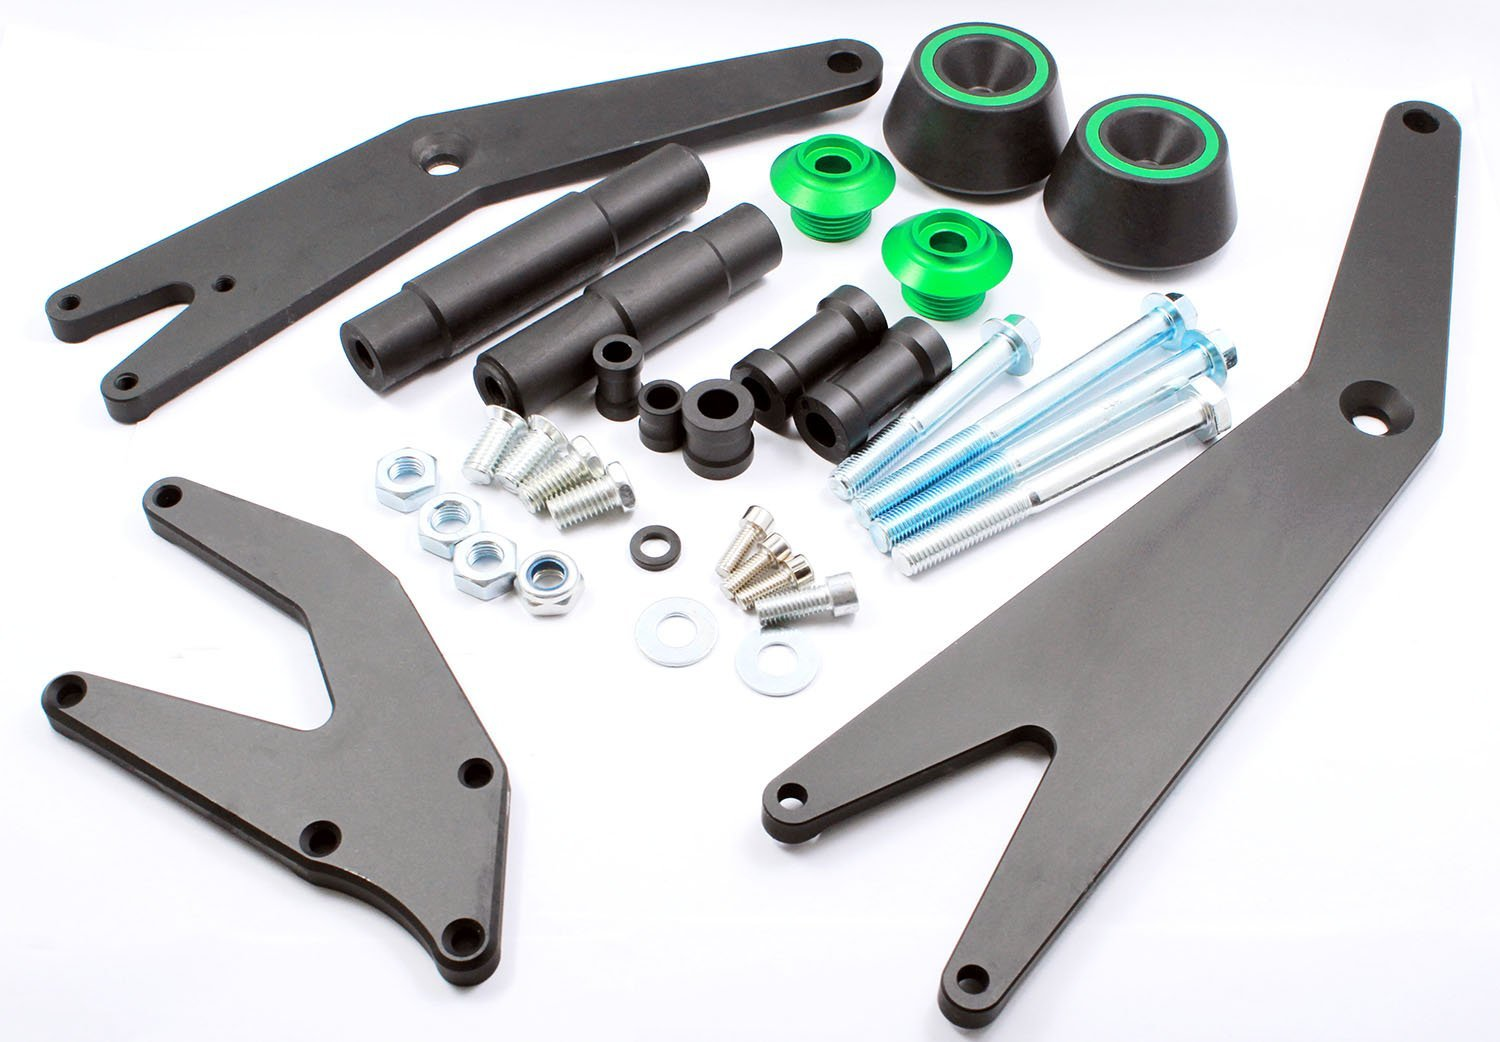 Motorcycle CNC Falling Crash Protector Frame Sliders Guard Mount Bracket Kit For Kawasaki NINJA300 NINJA250 ZX300 ZX250 (Kawasaki, NINJA250/300)